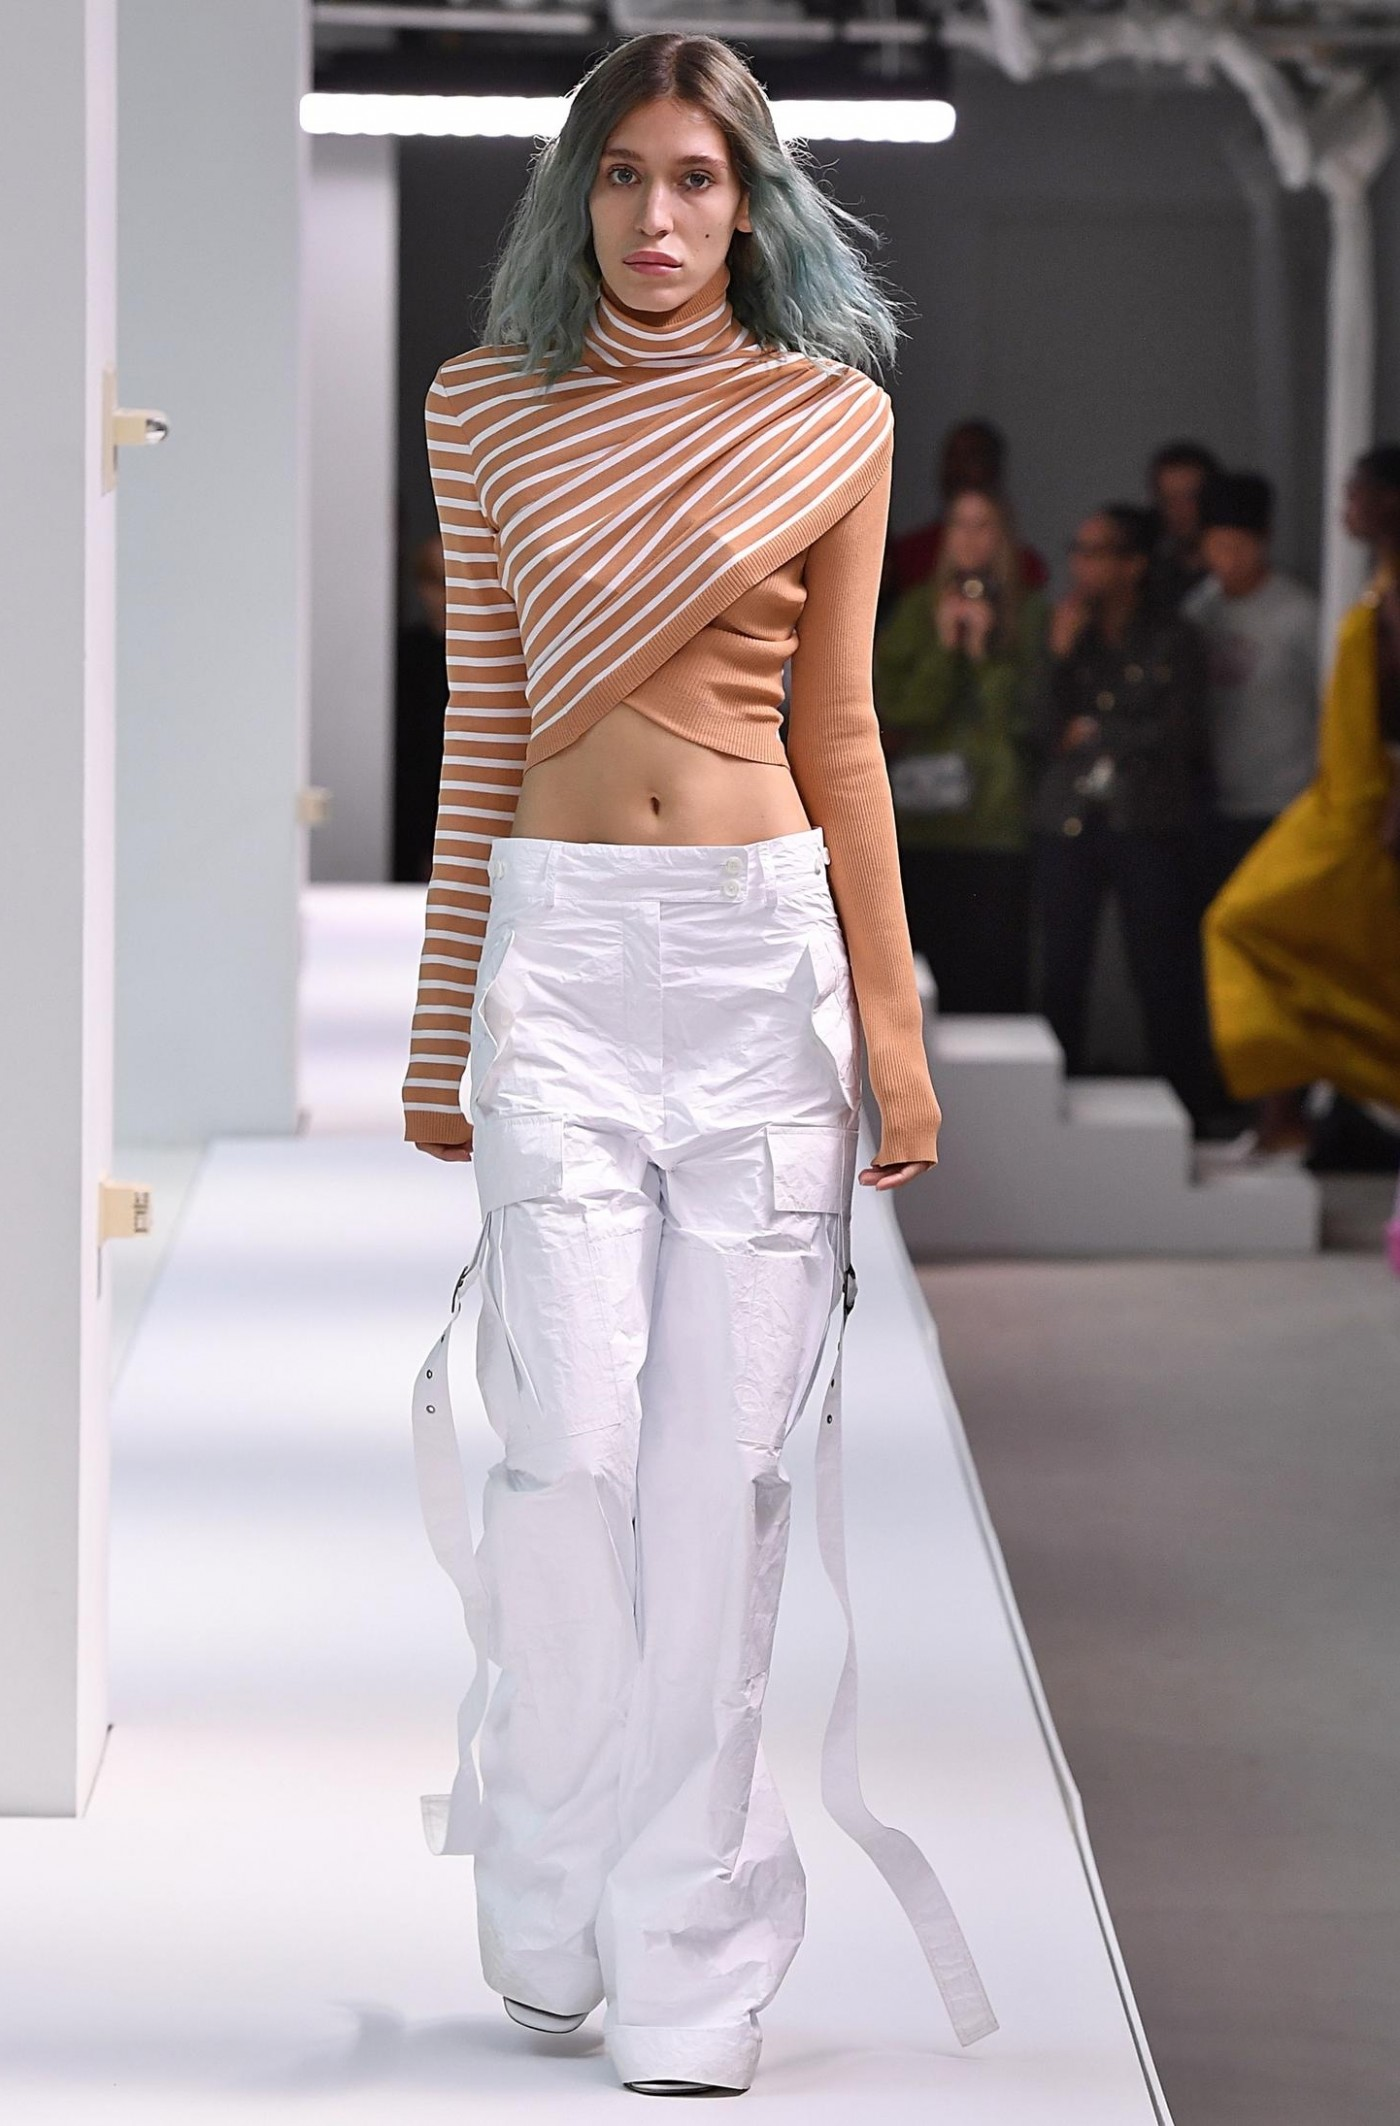 d544edaf26d The 6 key Spring 2019 trends confirmed by the runways - EDITED